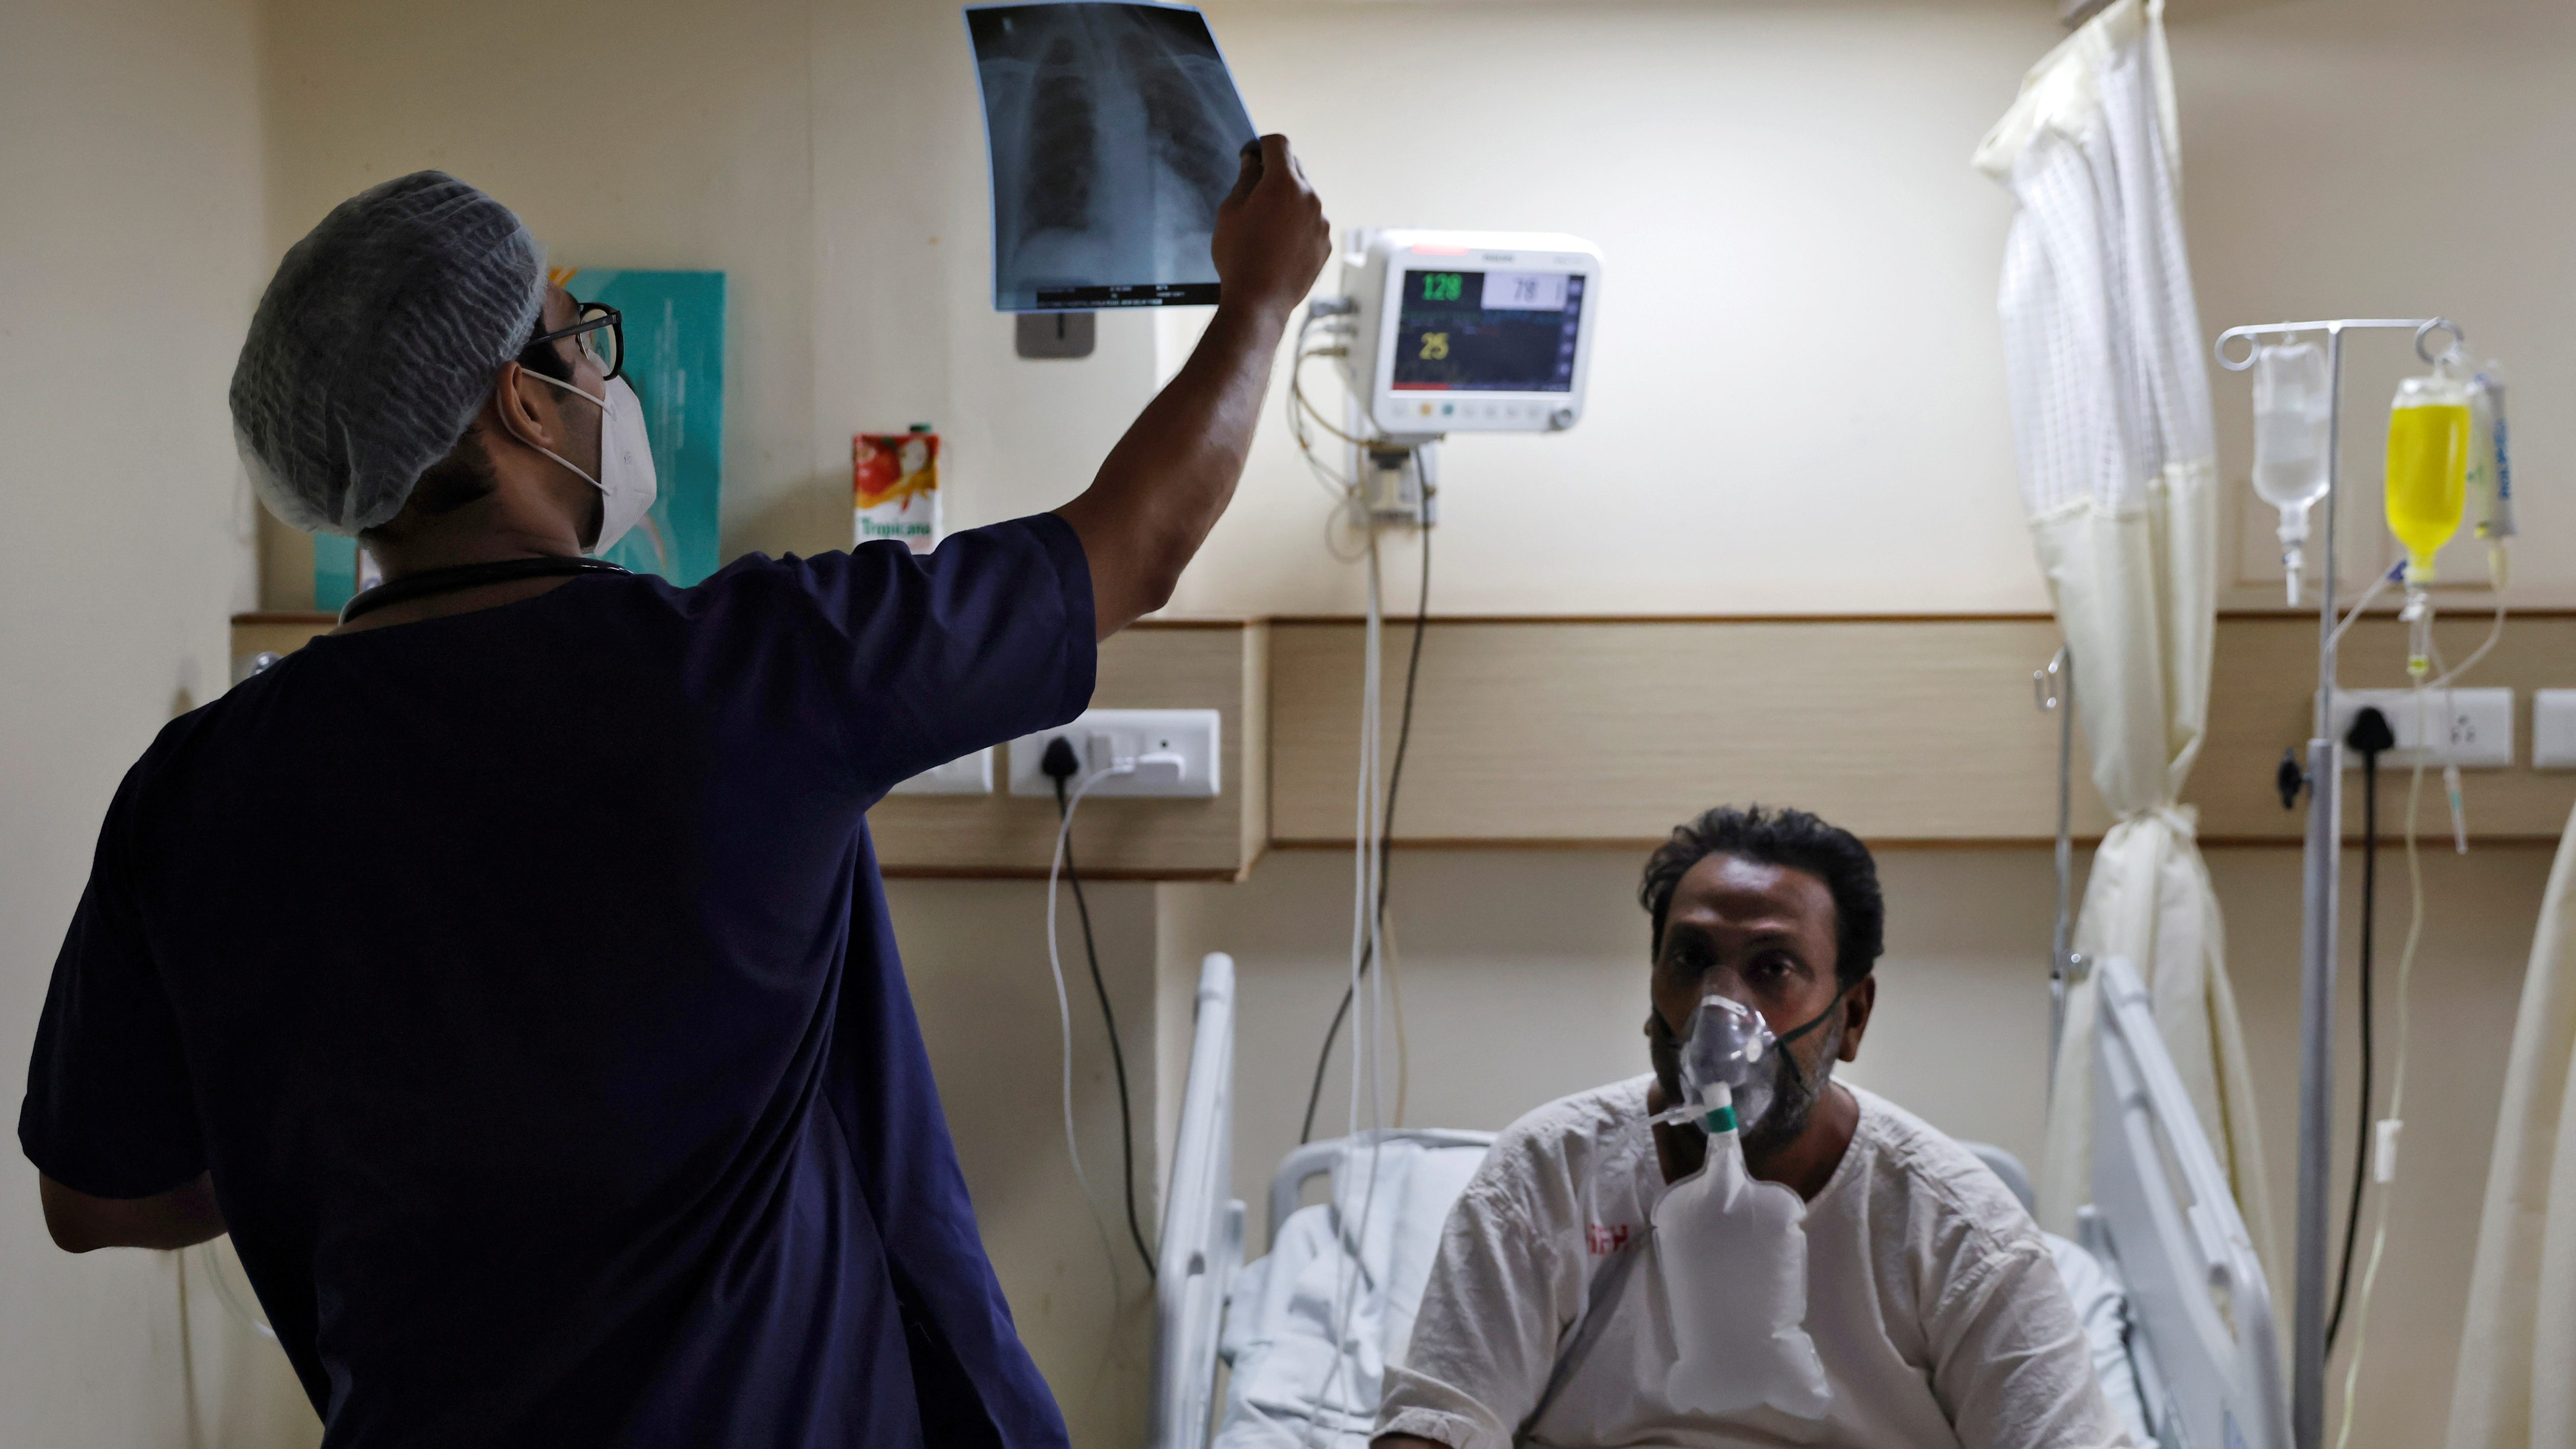 A doctor checks an X-ray of a patient suffering from the coronavirus disease (COVID-19) inside a COVID-19 ward of a hospital in New Delhi